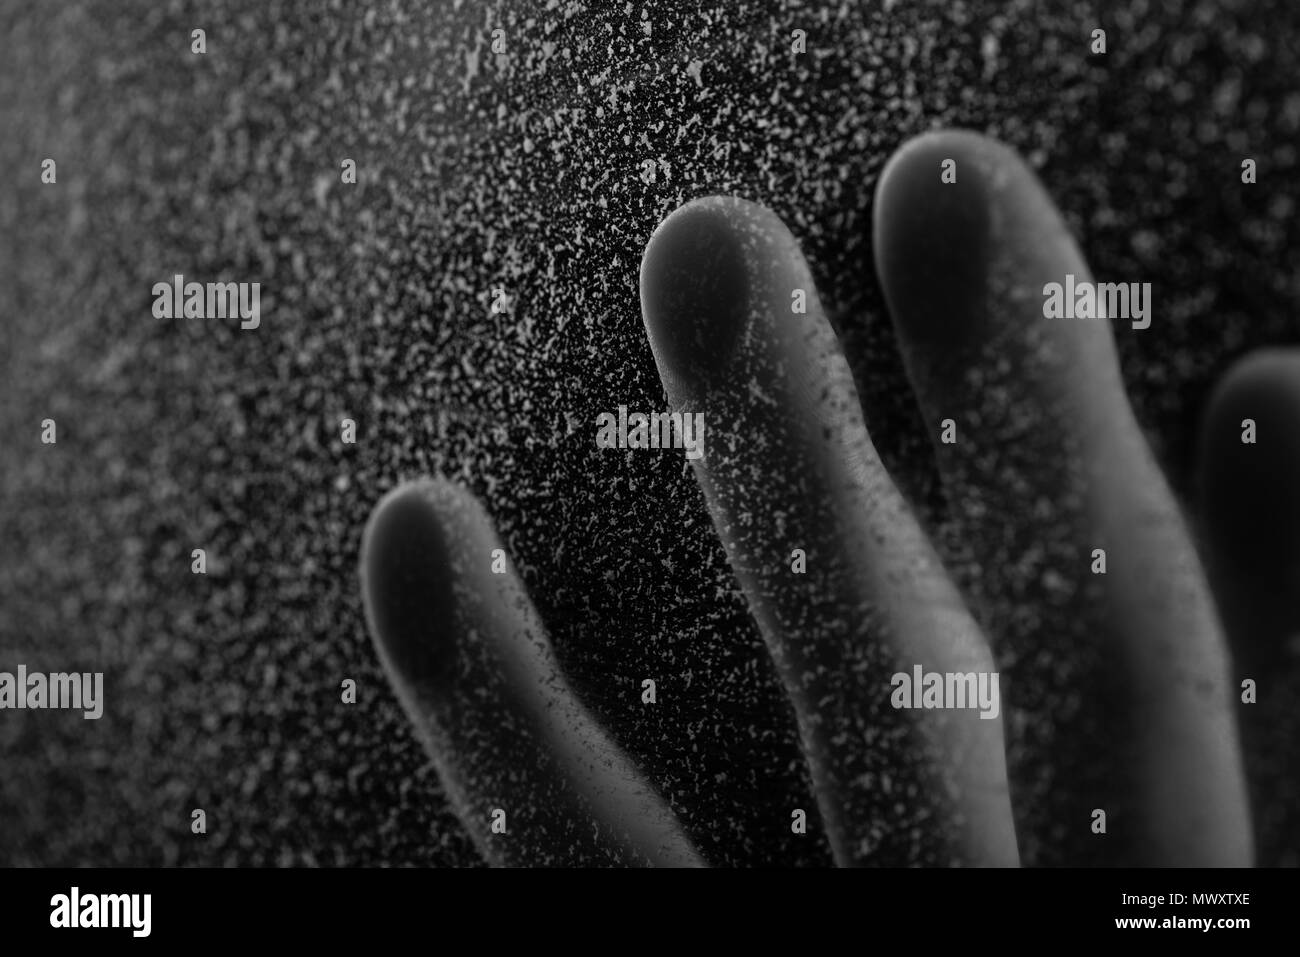 close-up partial view of human hand touching frosted glass - Stock Image